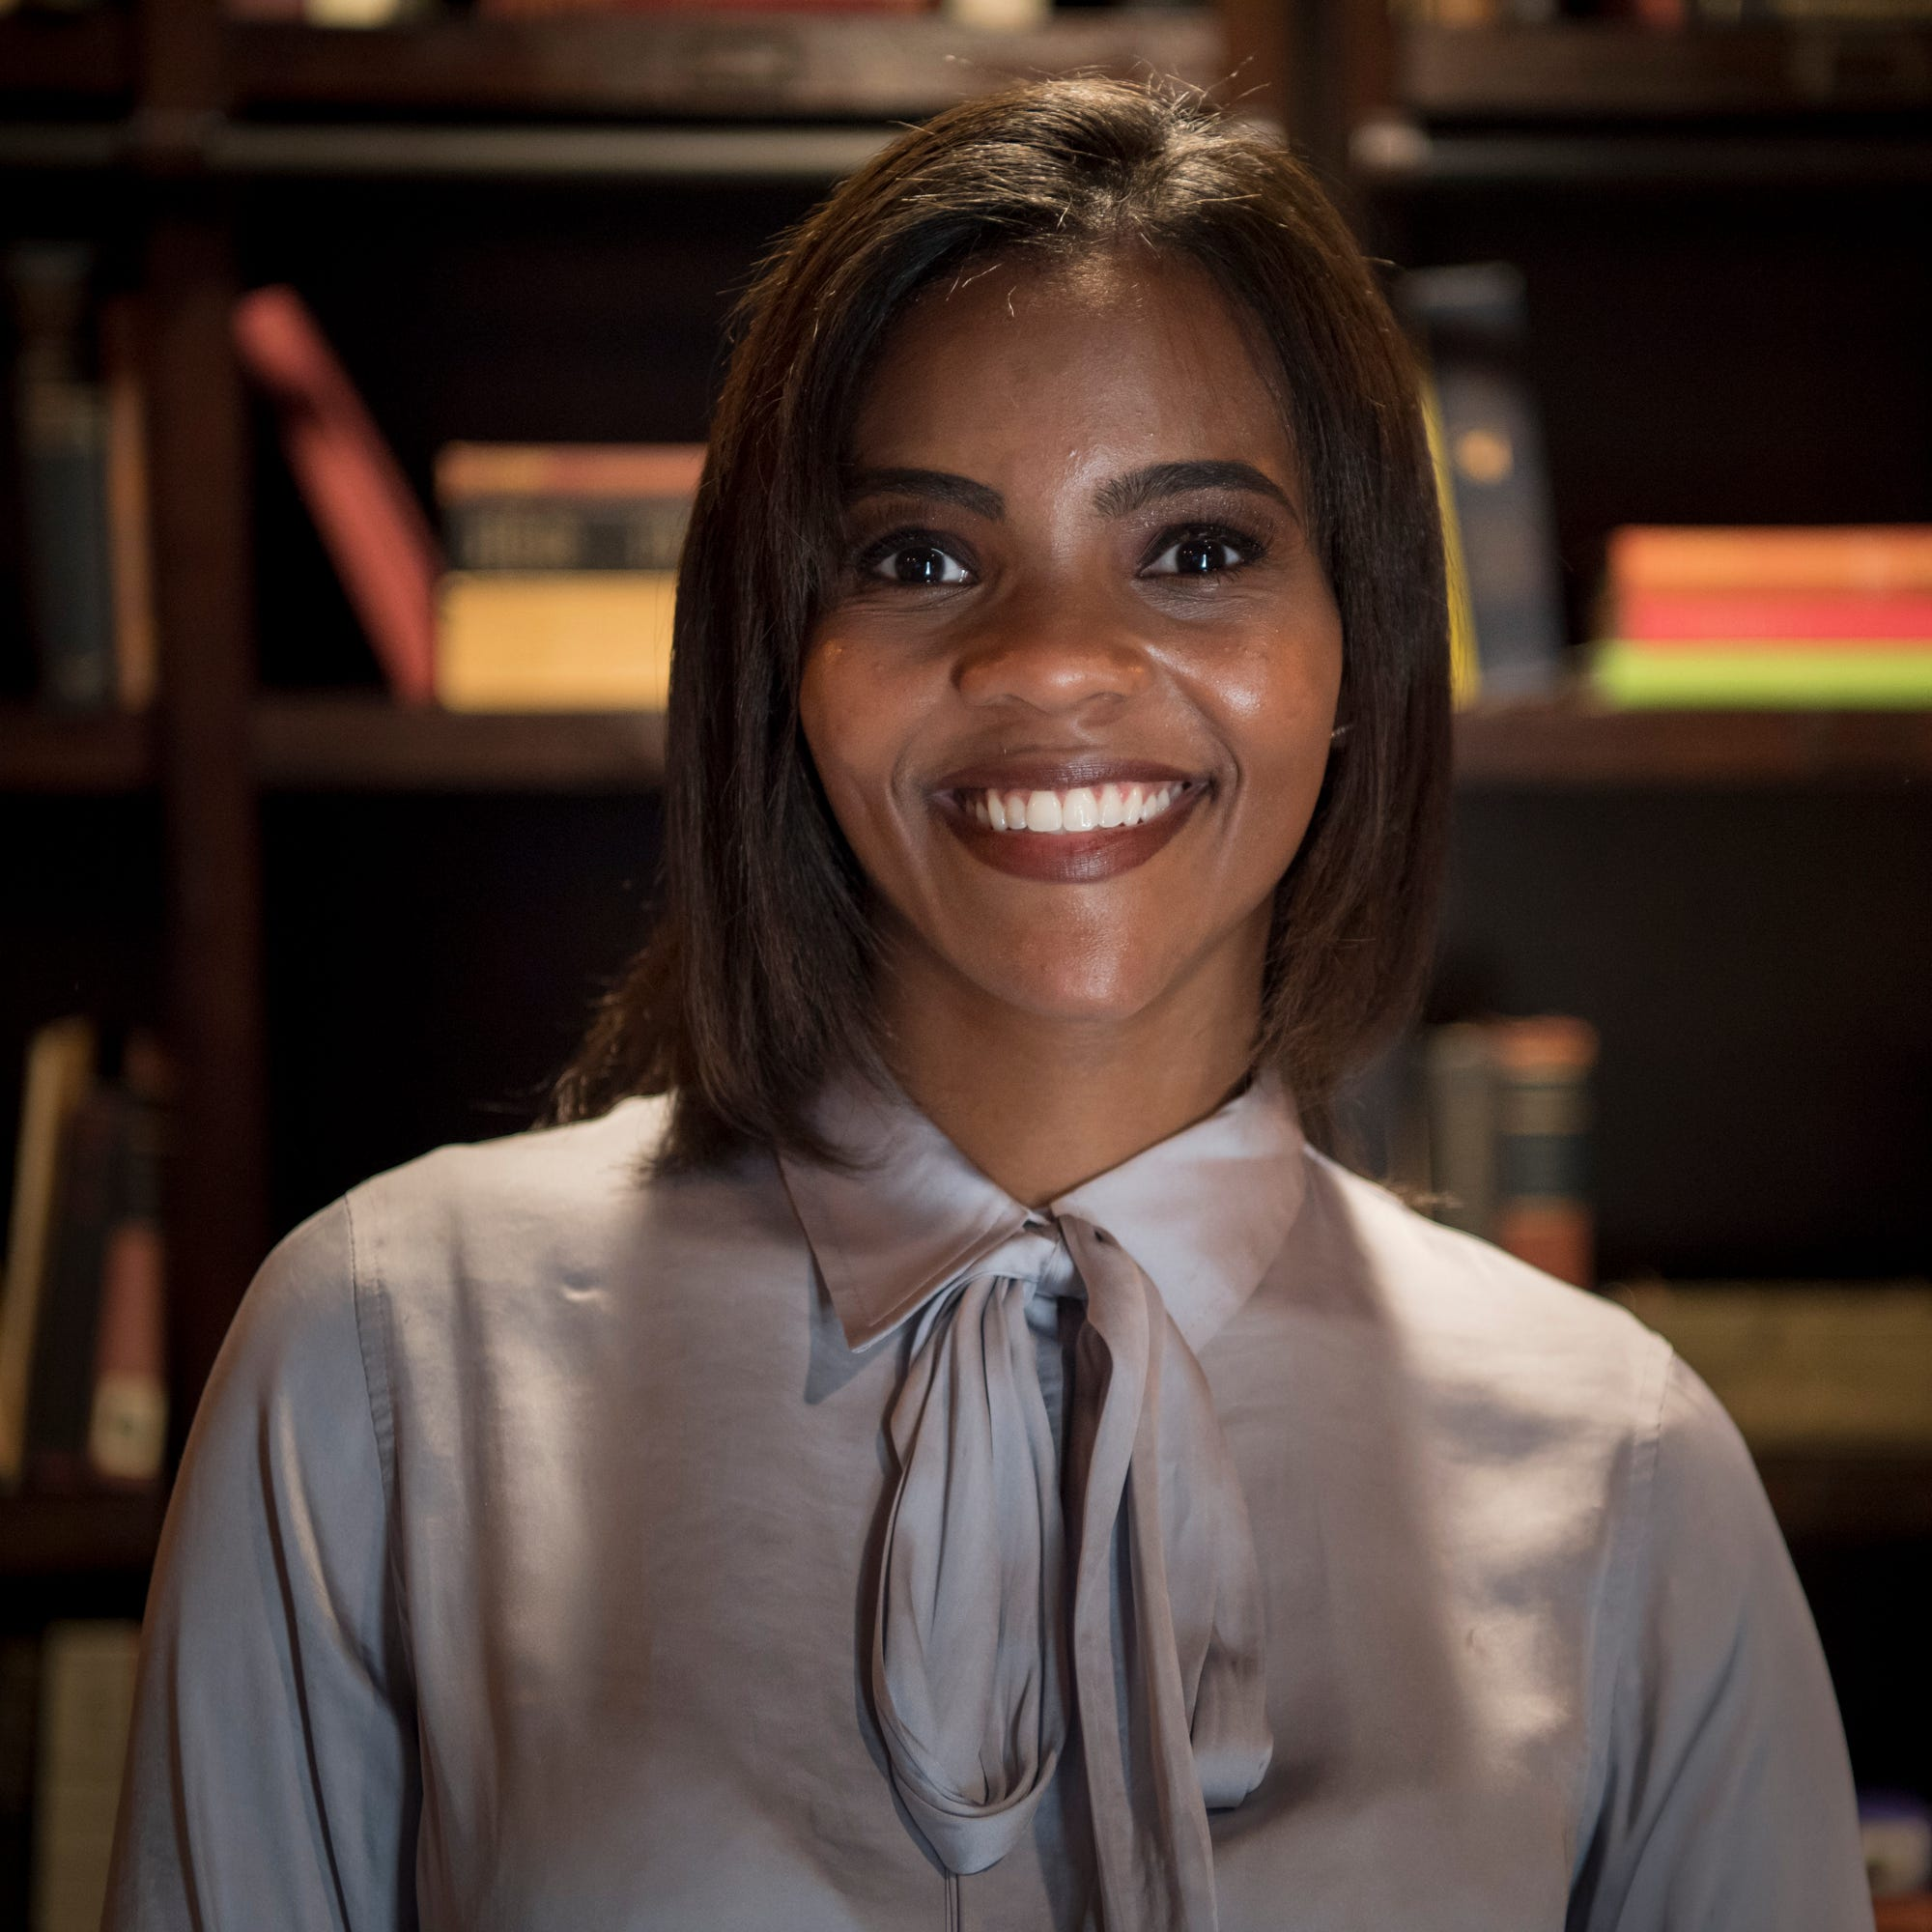 Candace Owens backstage at Liberty University's convocation on Sept. 26, 2018.